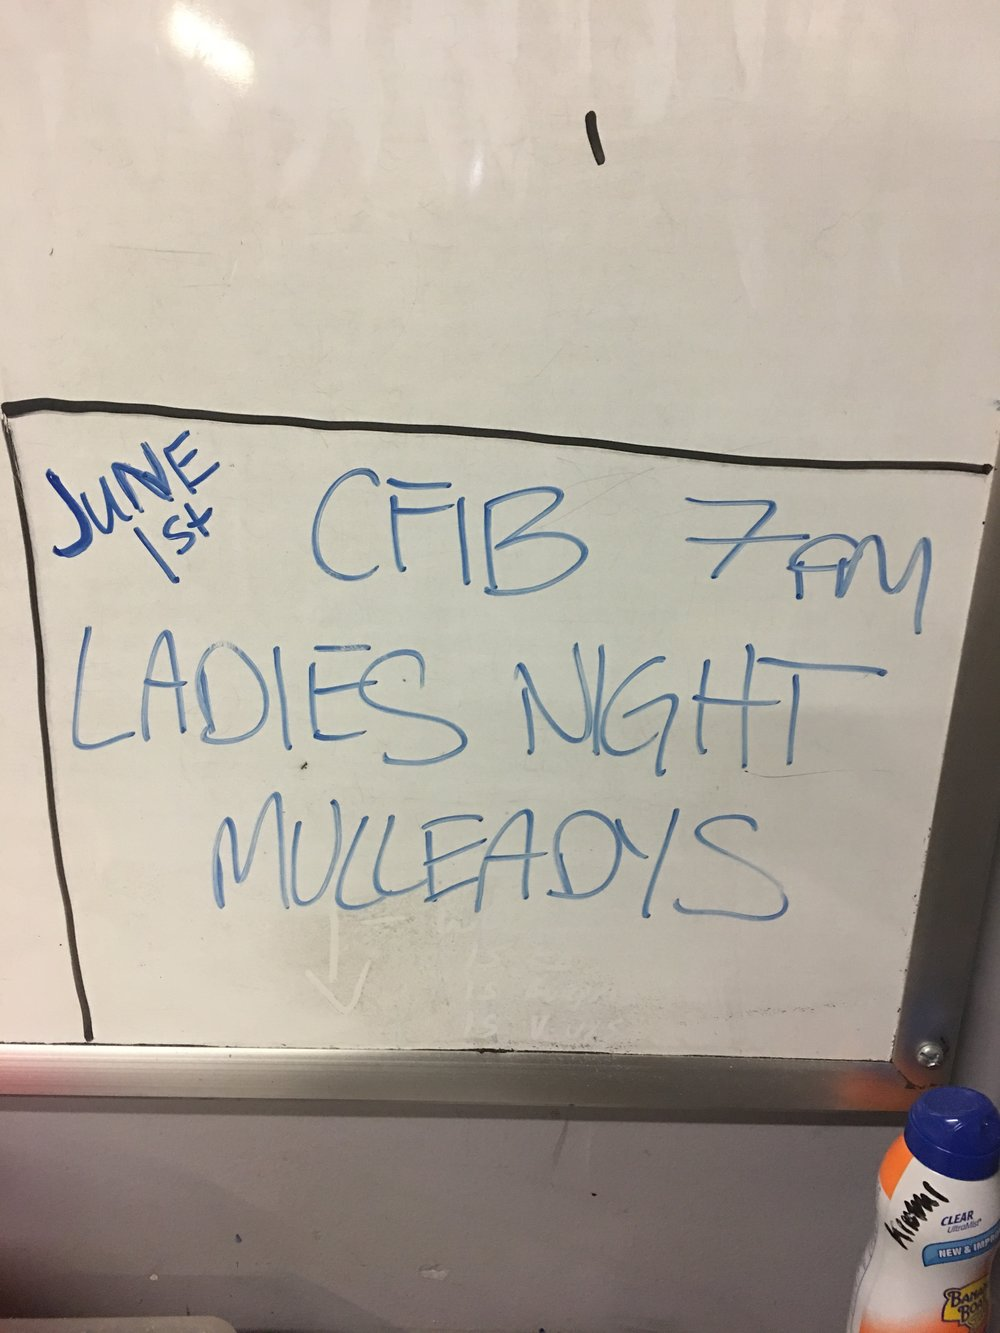 Don't forget CFIB Ladies night at 7pm Mulleady's